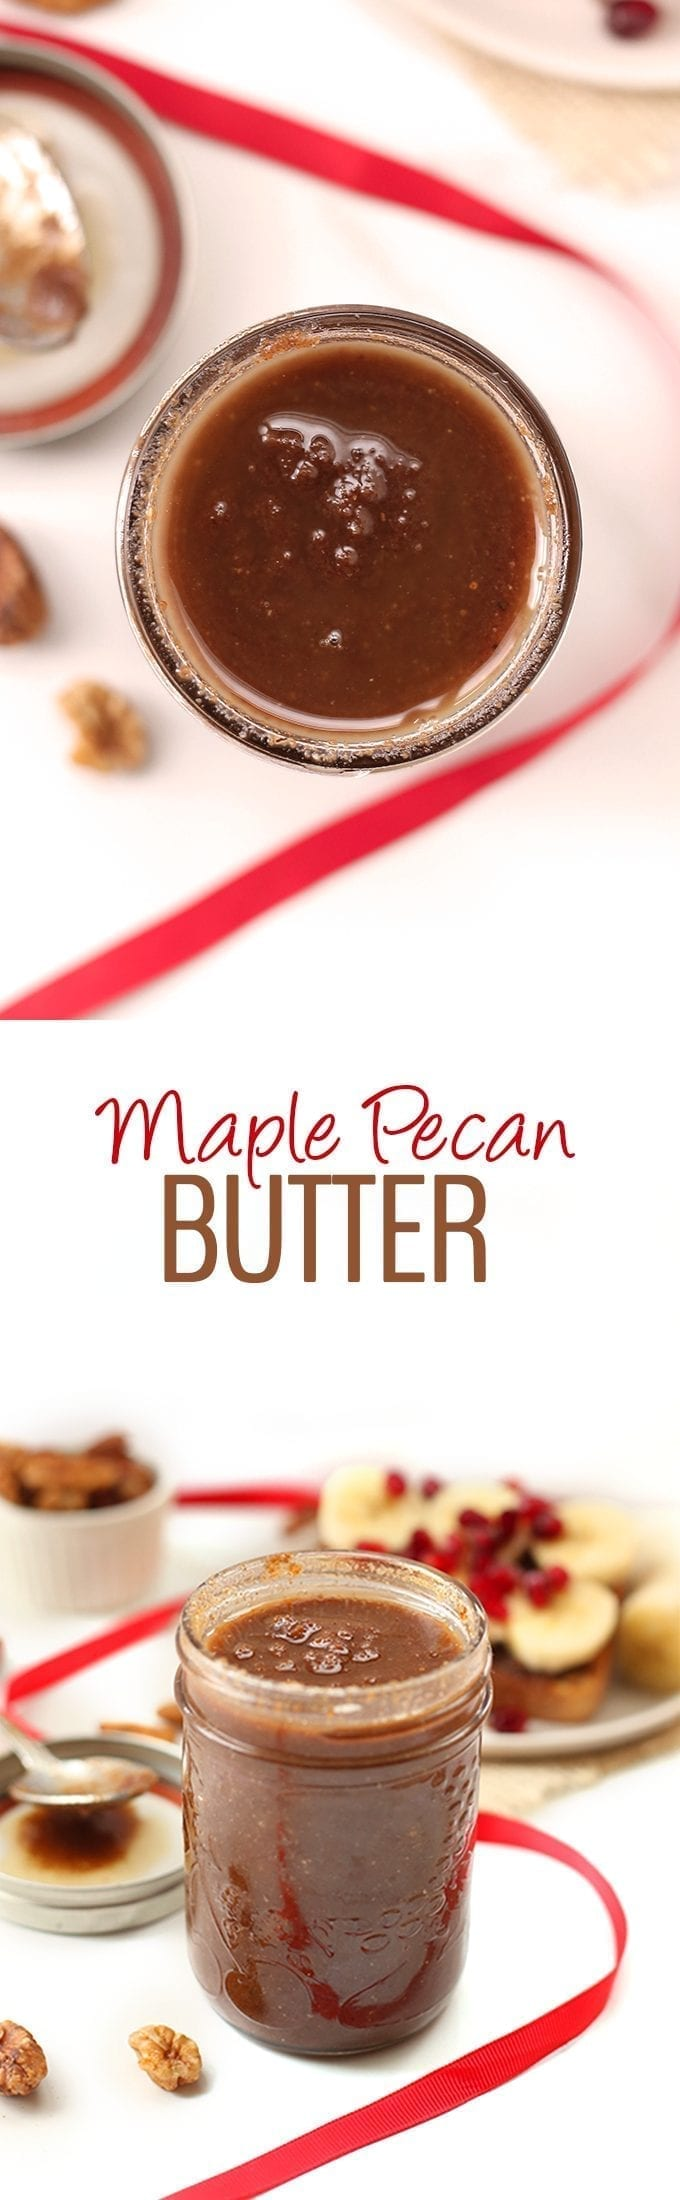 Nut butter is easier to make than you think! This seasonal Maple Pecan Butter is insanely delicious on its own but also perfect on top of oatmeal, toast or in smoothies. The possibilities for this recipe are endless!